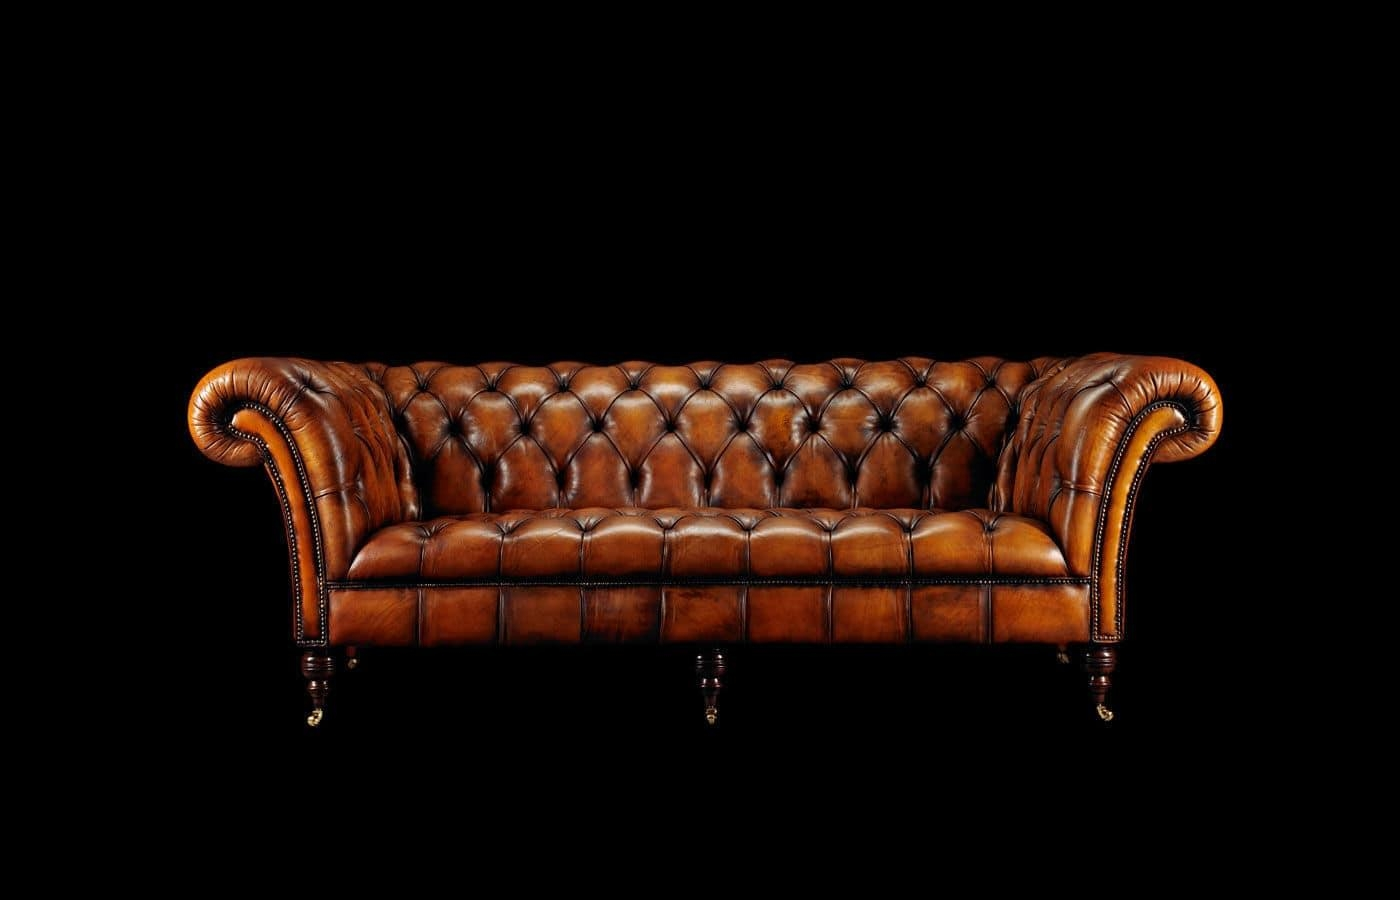 Chesterfield Sofa / Leather / 2 Seater / On Casters – Phillip Pertaining To Casters Sofas (Image 5 of 20)